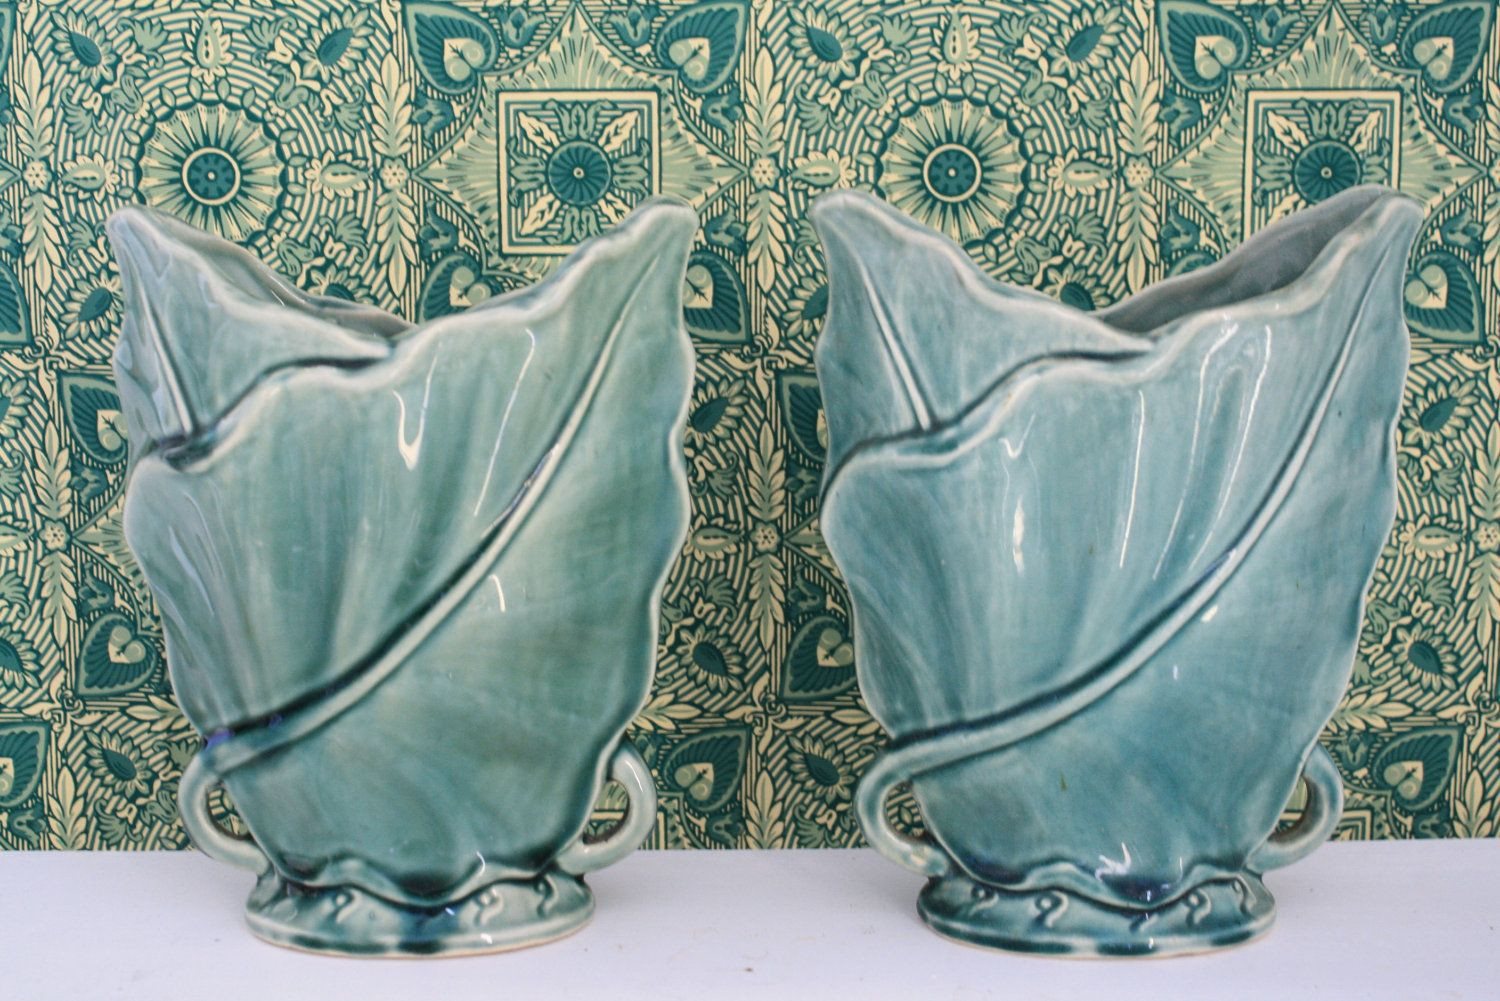 mccoy pottery pink vase of mccoy pottery a wonderful matched pair of marked mccoy j for 1950s pair of green ceramic brush mccoy pottery palm leaf vases